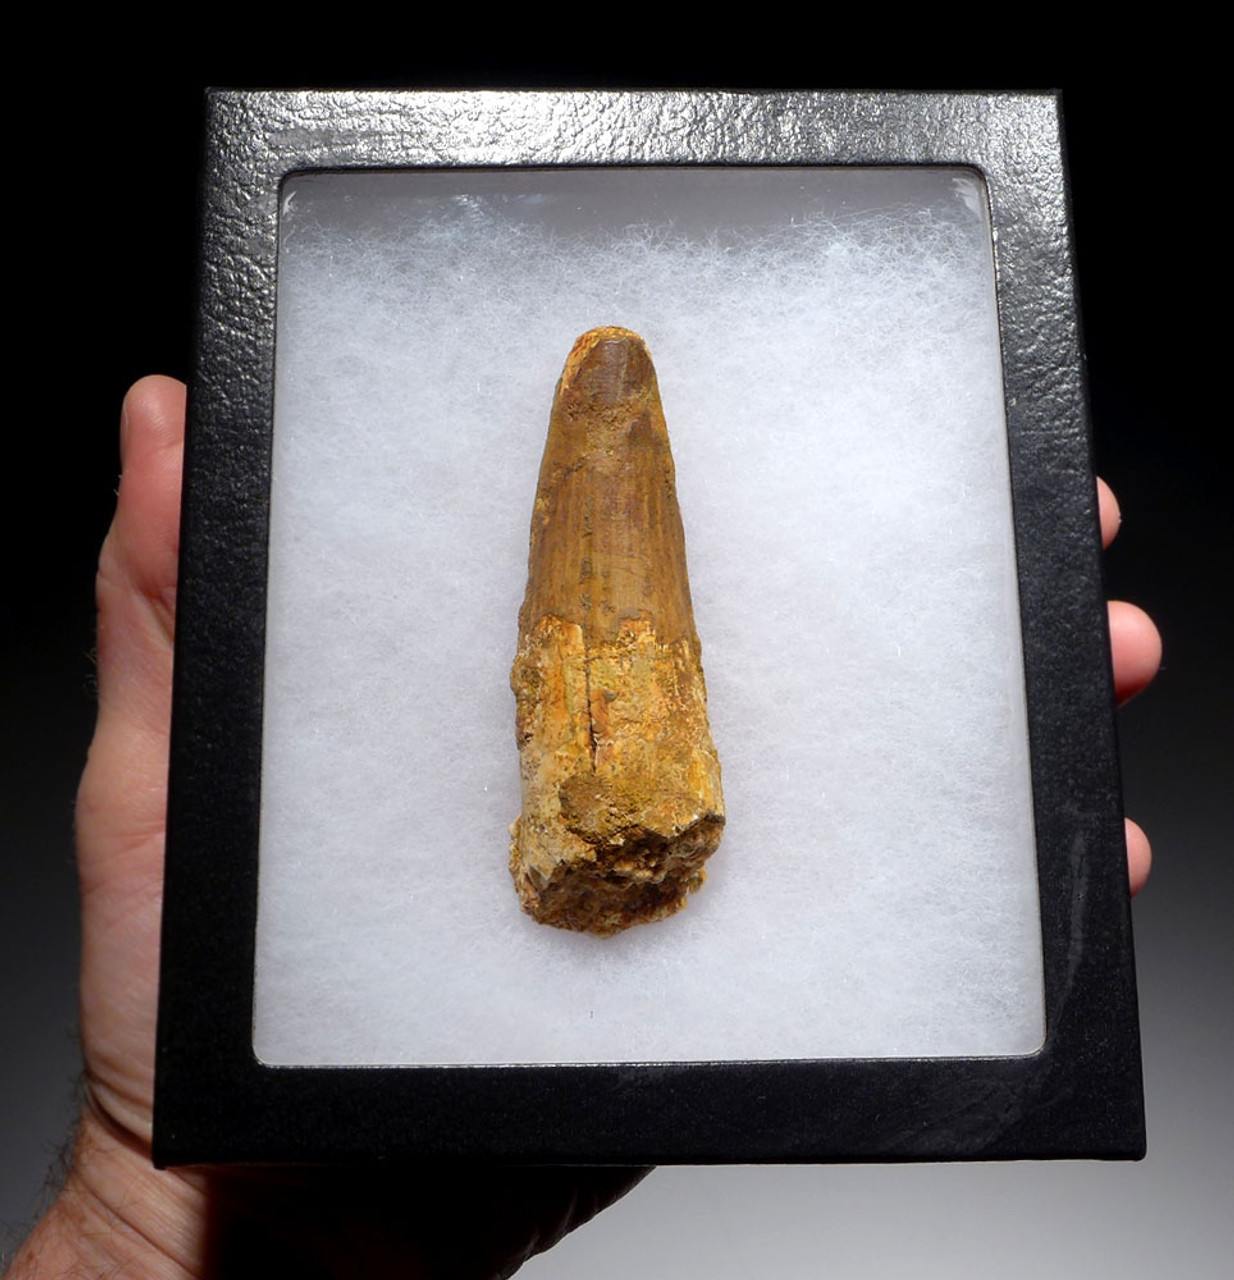 LARGE 3.4 INCH SPINOSAURUS DINOSAUR FOSSIL TOOTH *DT5-395